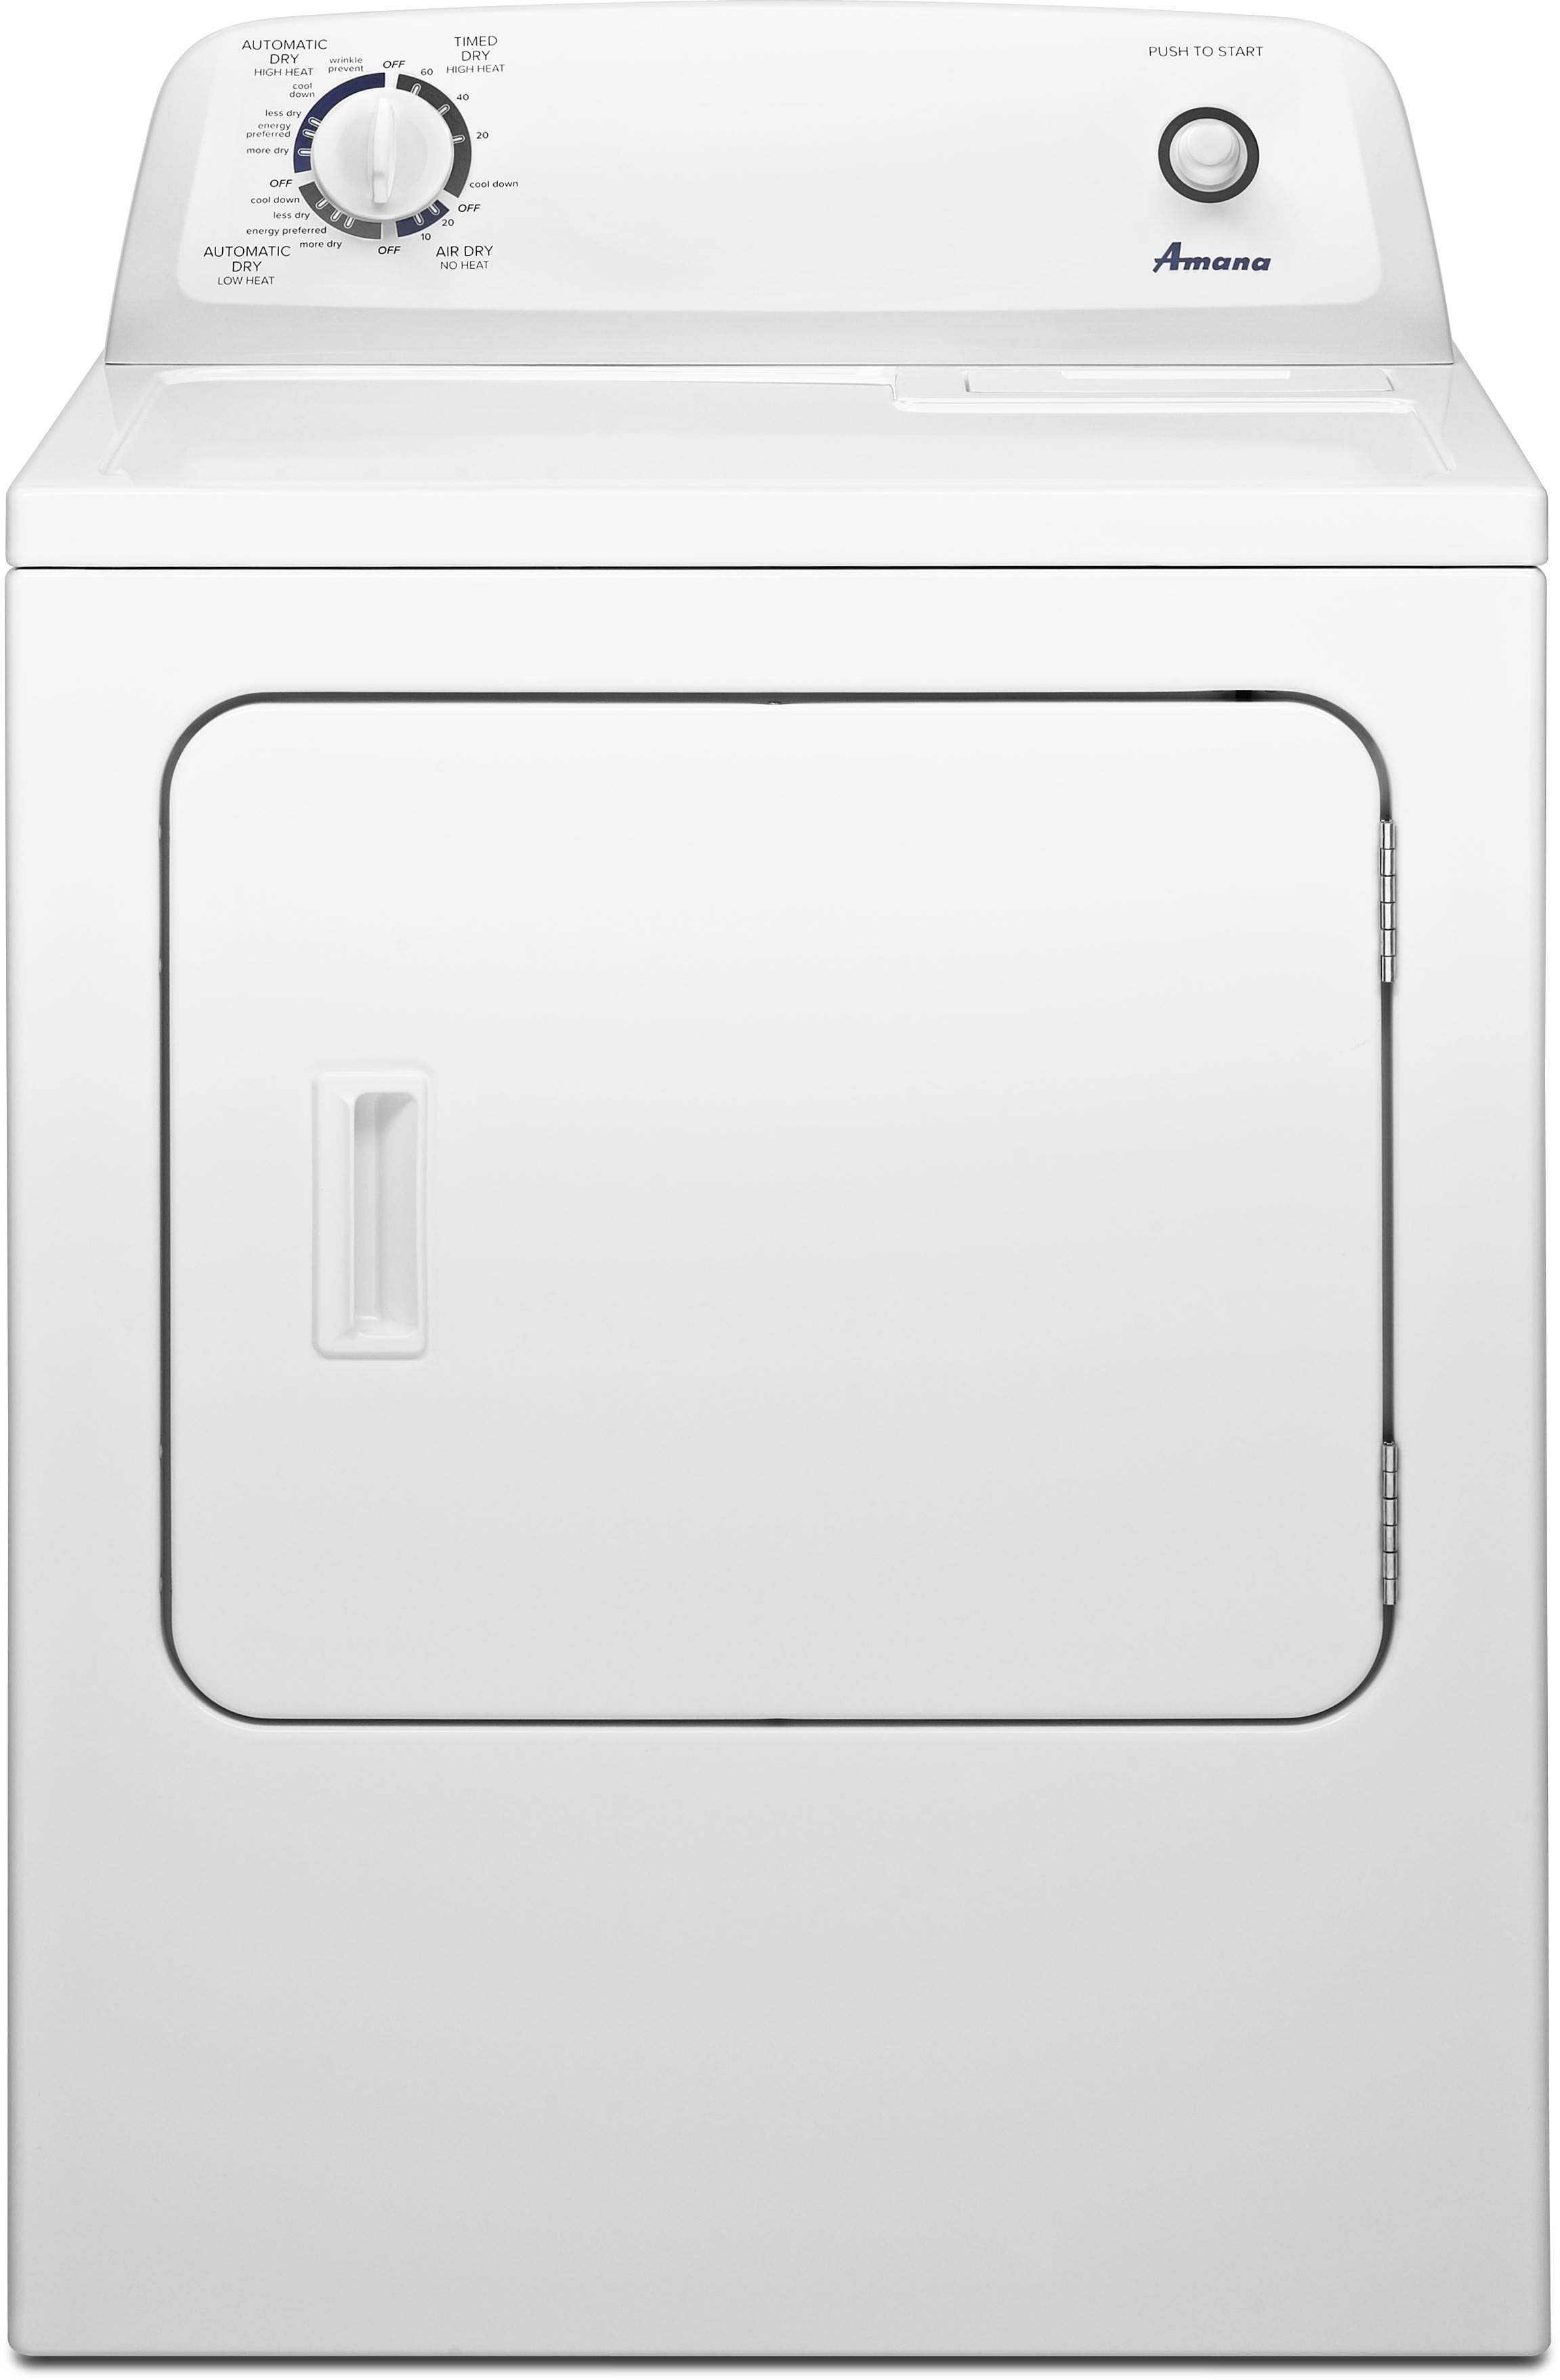 [DIAGRAM_5NL]  Amana NED4655EW 29 Inch 6.5 cu. ft. Electric Dryer with 11 Dry Cycles, 3  Temperature Settings, Wrinkle Prevent Option and Automatic Dryness Control | Amana Clothes Dryer Wiring Diagrams |  | AJ Madison